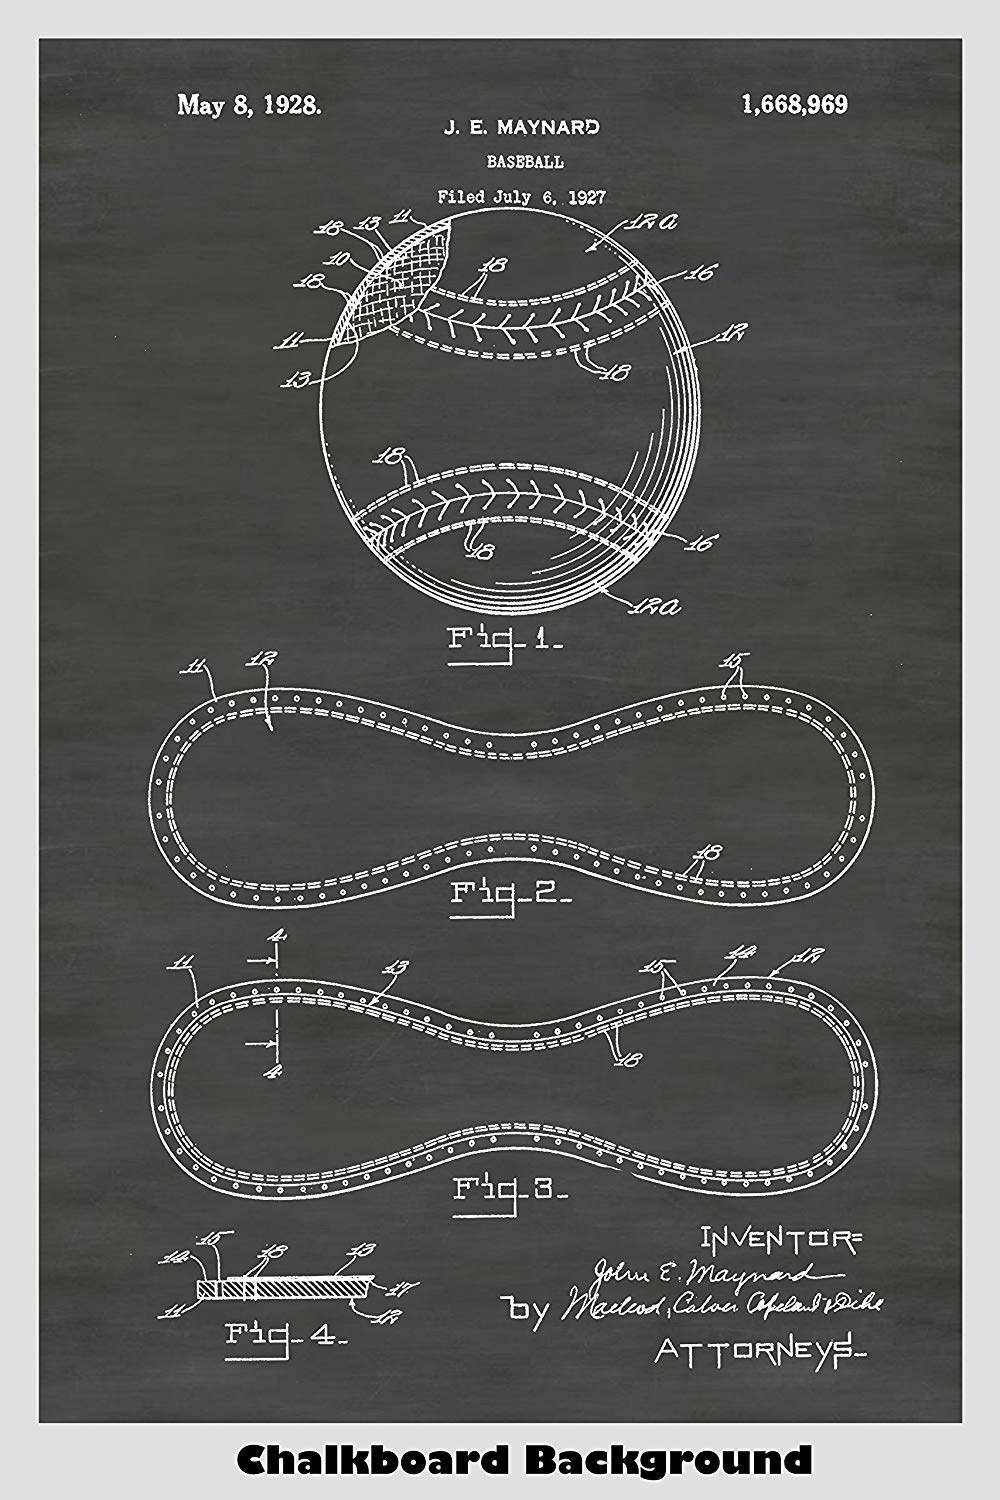 Example patent of a baseball, showing the pieces that are sewn together to make the cover.